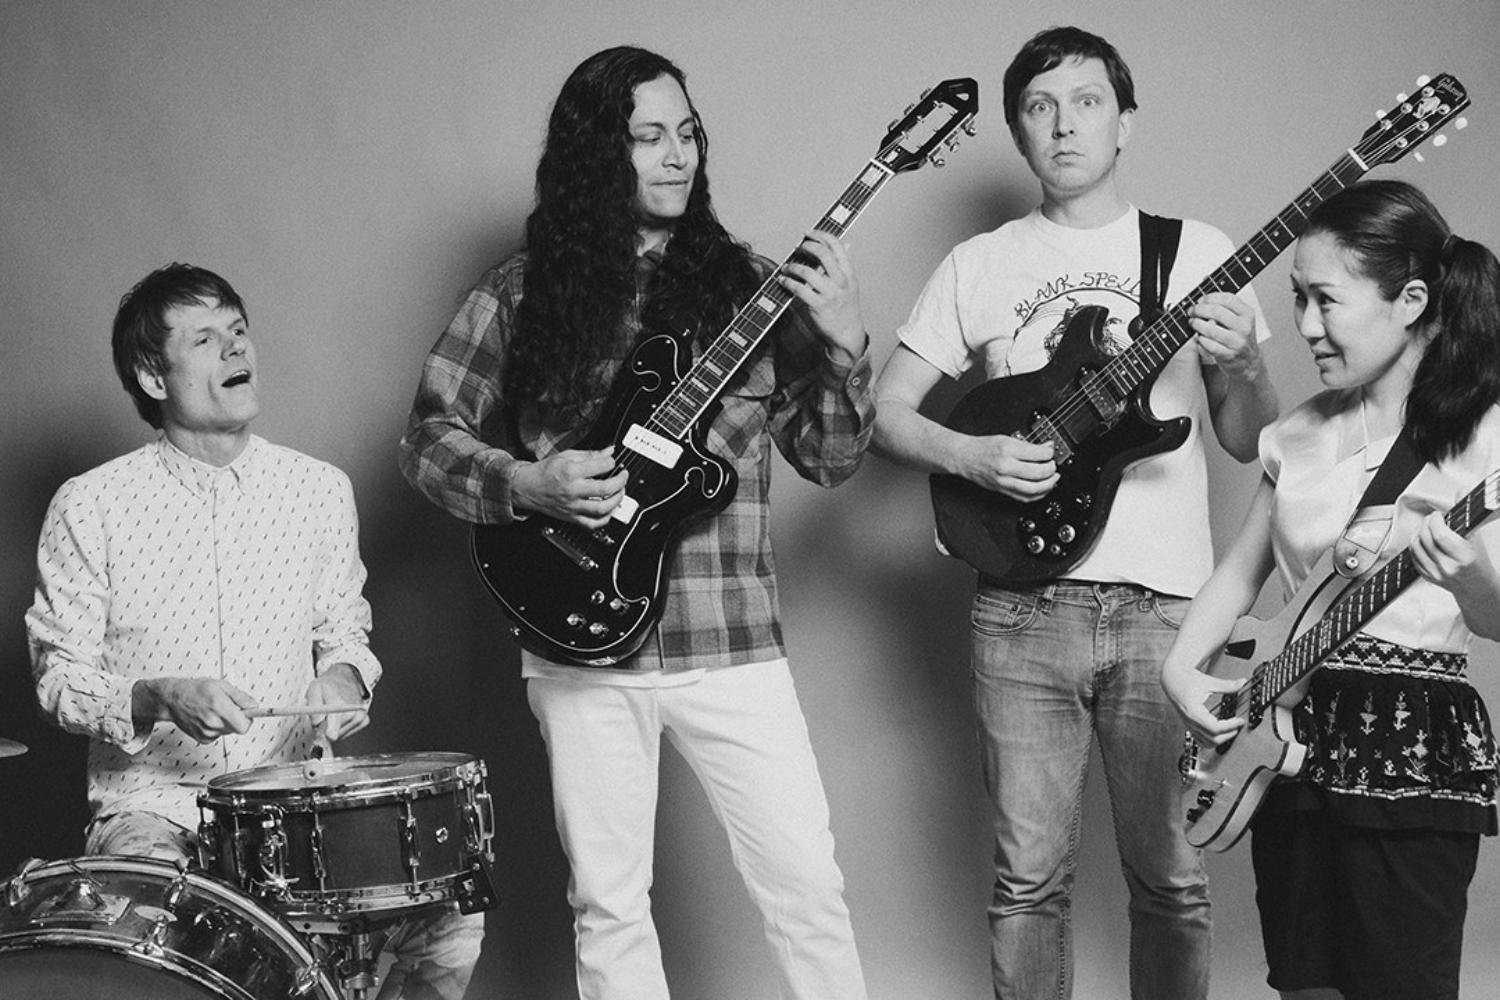 Upbringing: Deerhoof